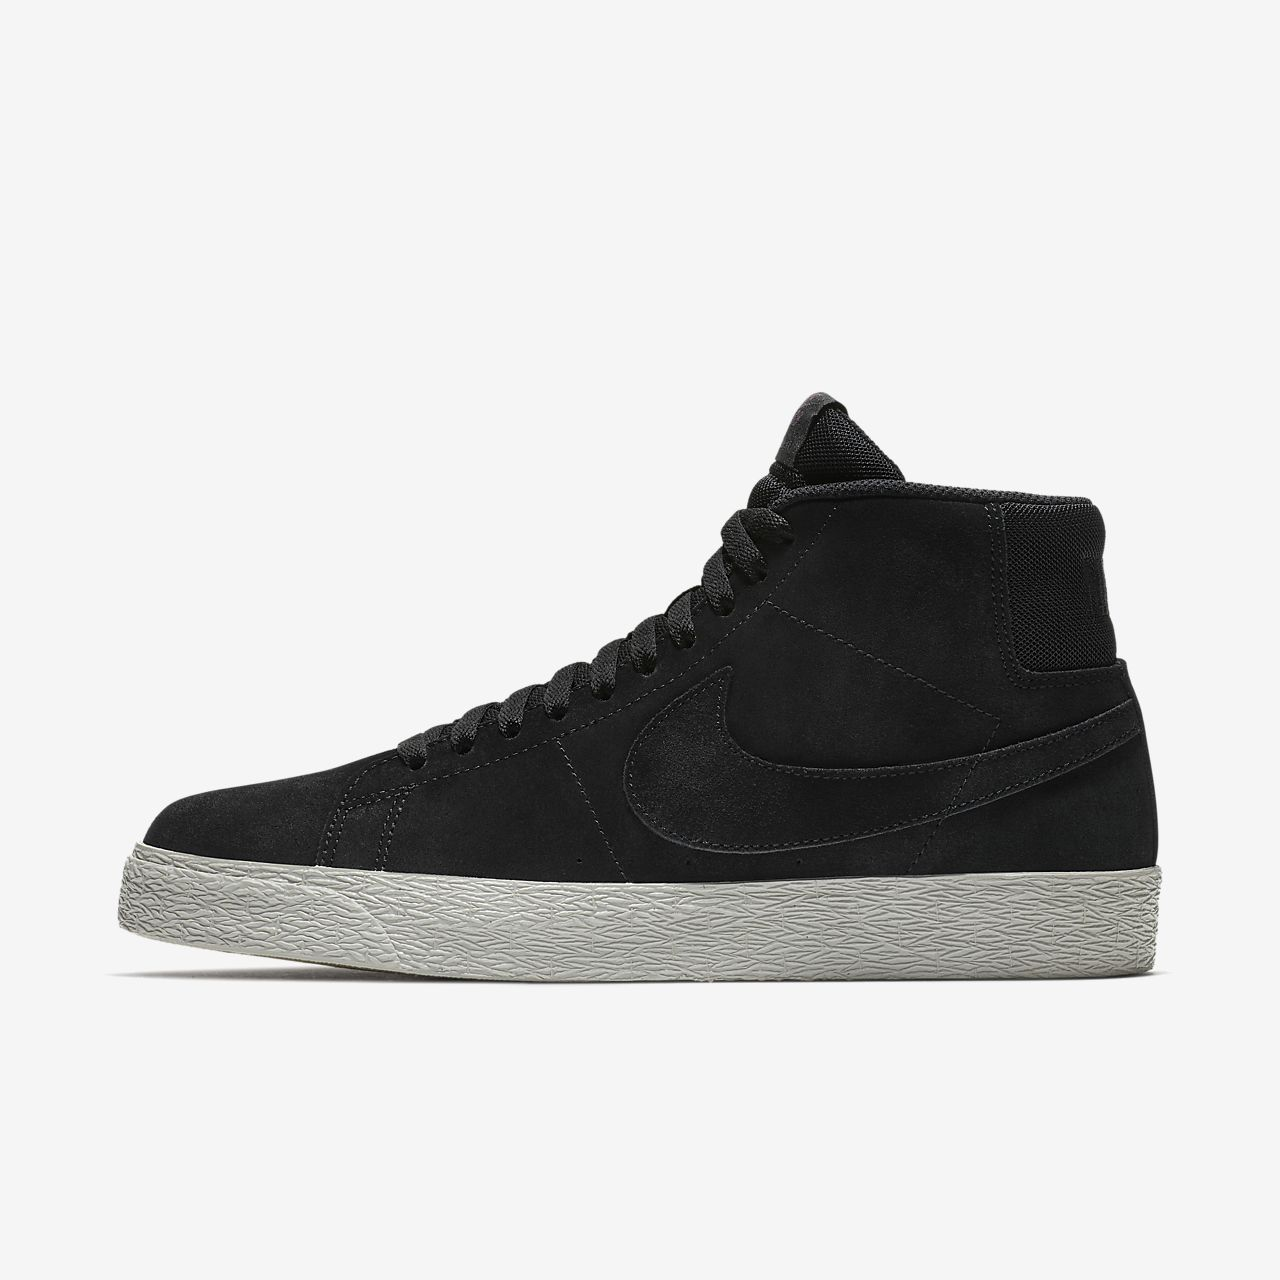 de gros réduction explorer Nike Shades Blazer Mi Occultants vente eastbay yDgP6aPH